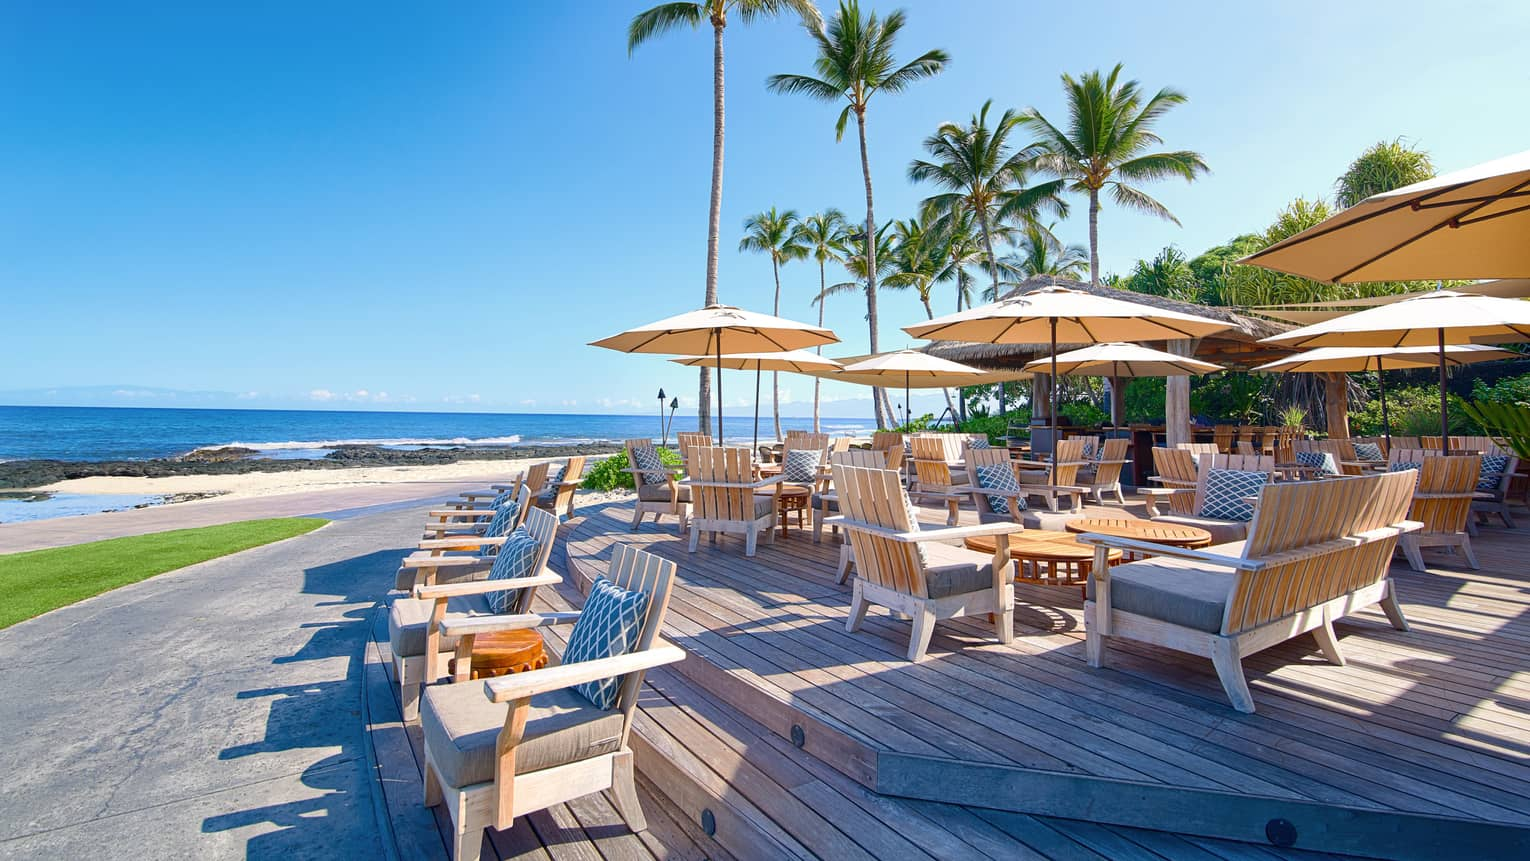 Beach Tree restaurant patio towering palm trees over wood deck, dining tables